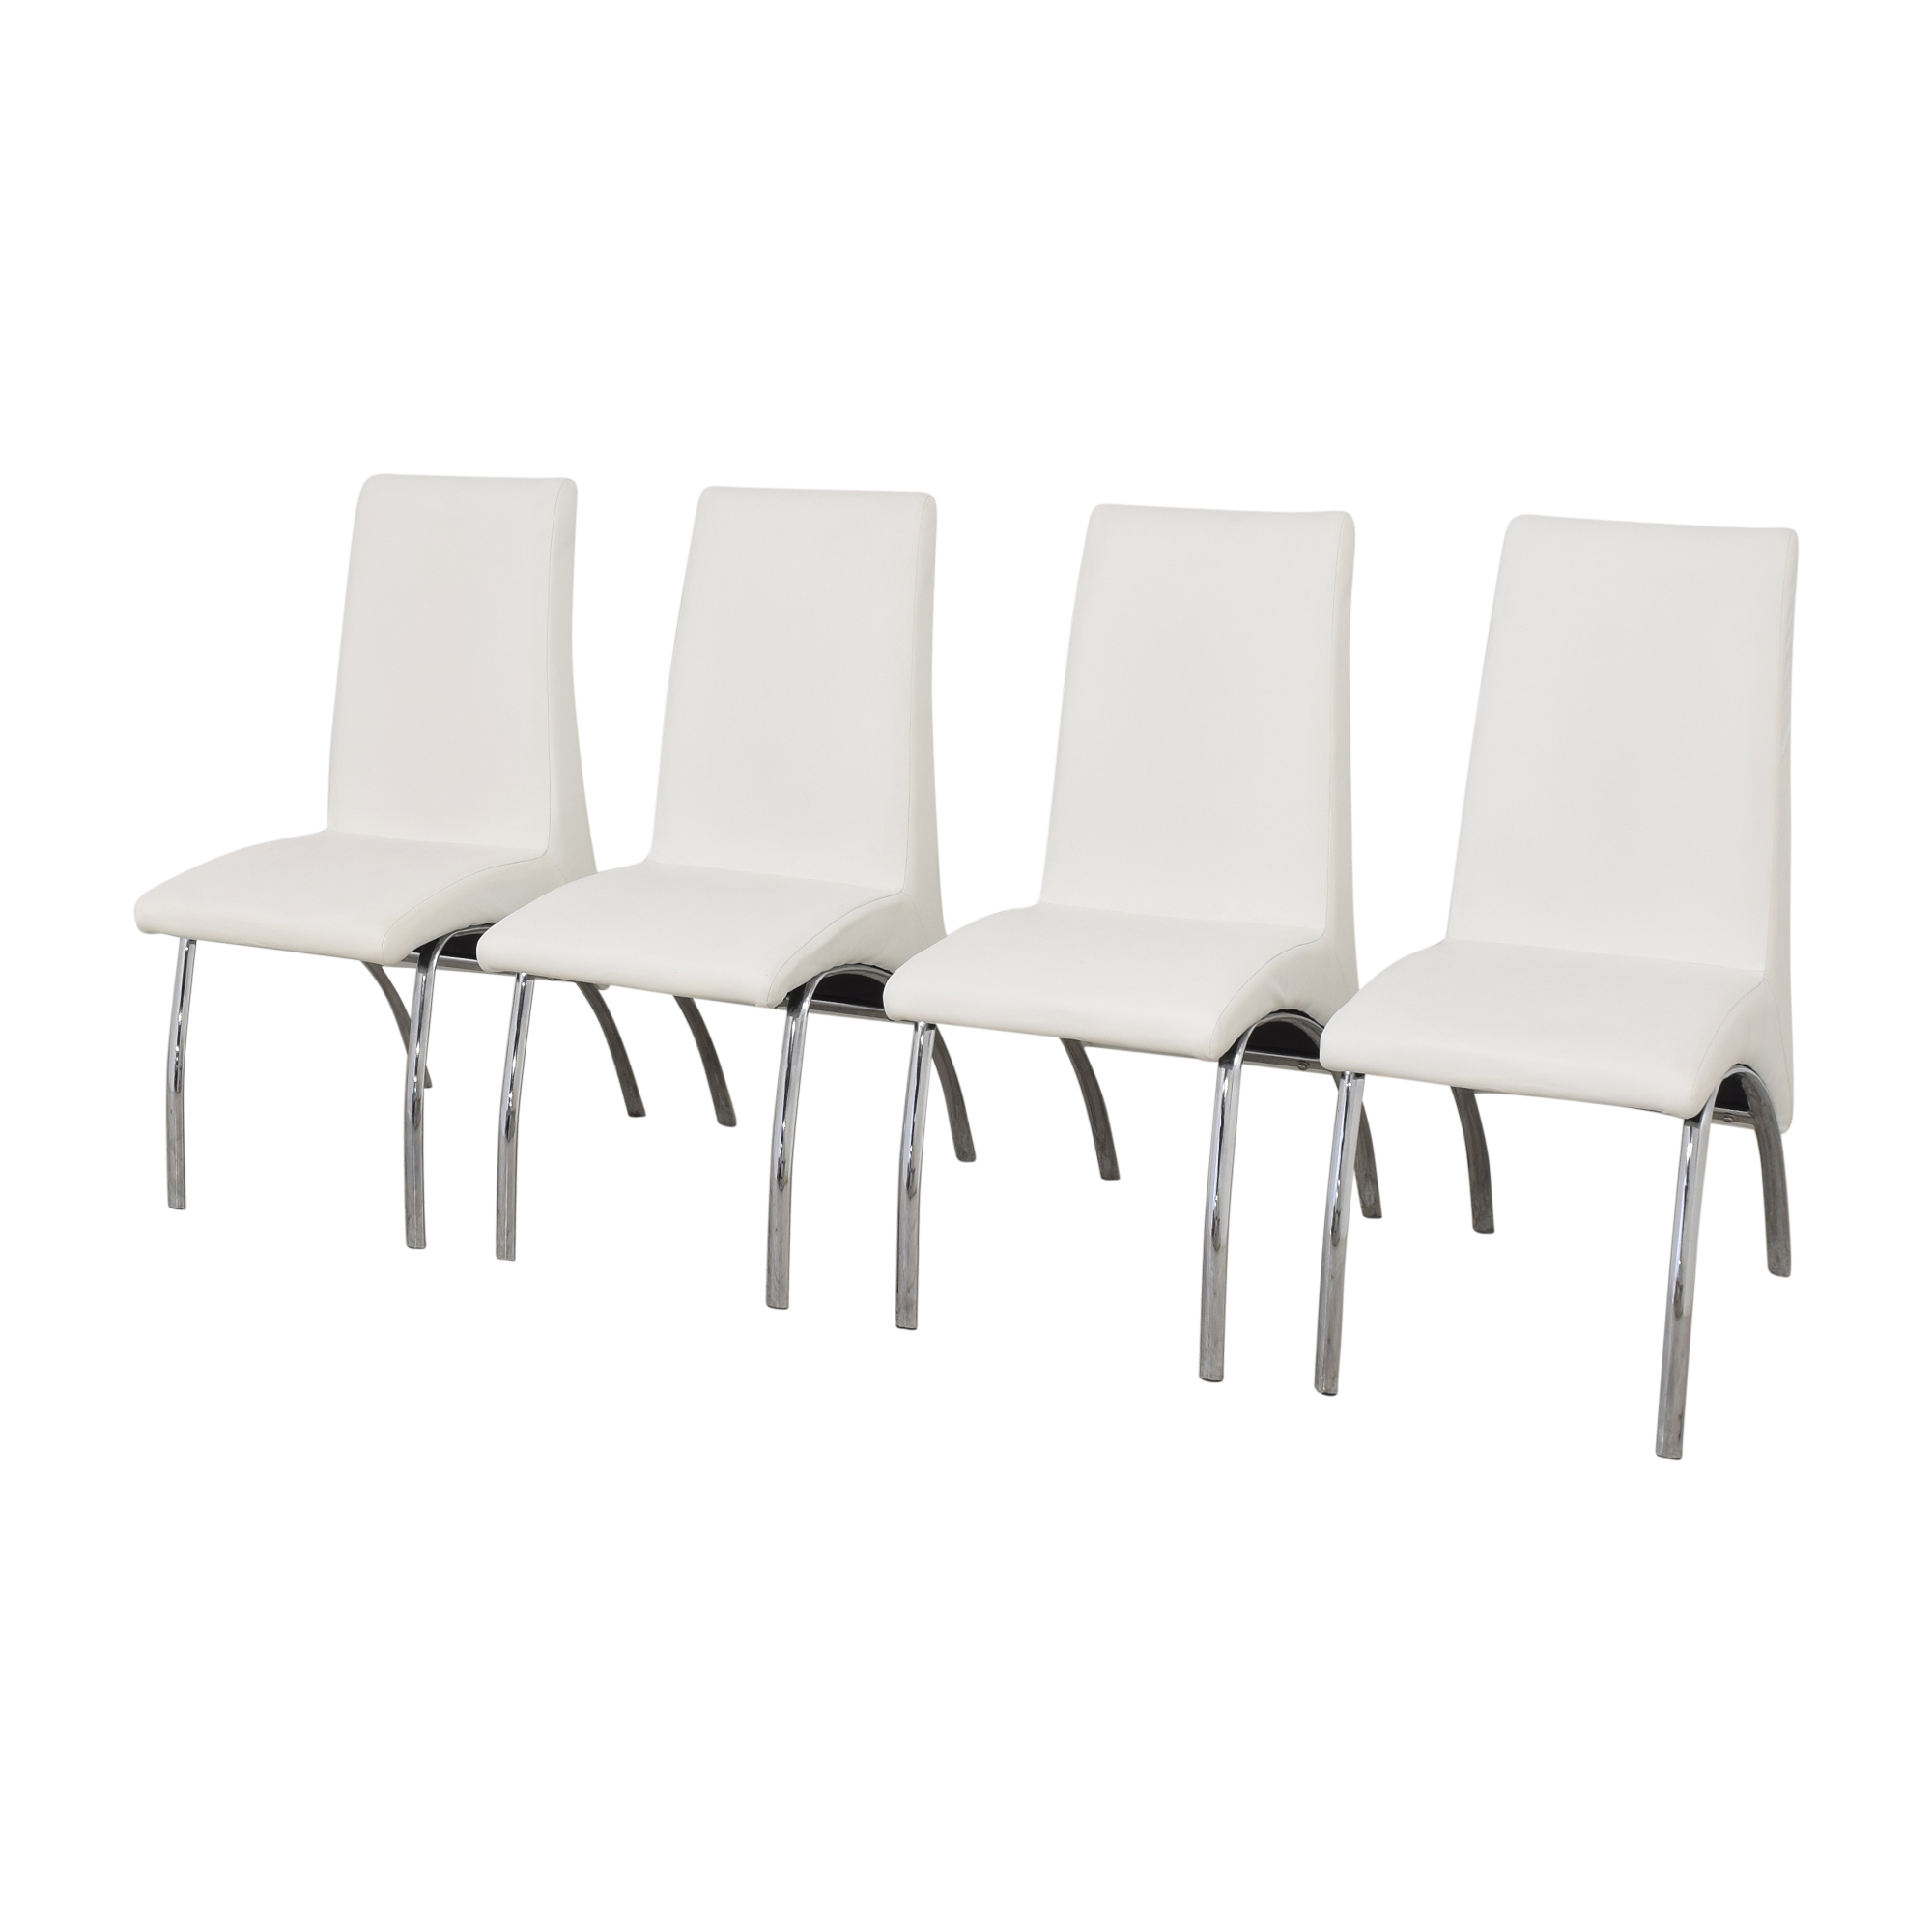 Furniture World Furniture World Contemporary Dining Chairs Dining Chairs